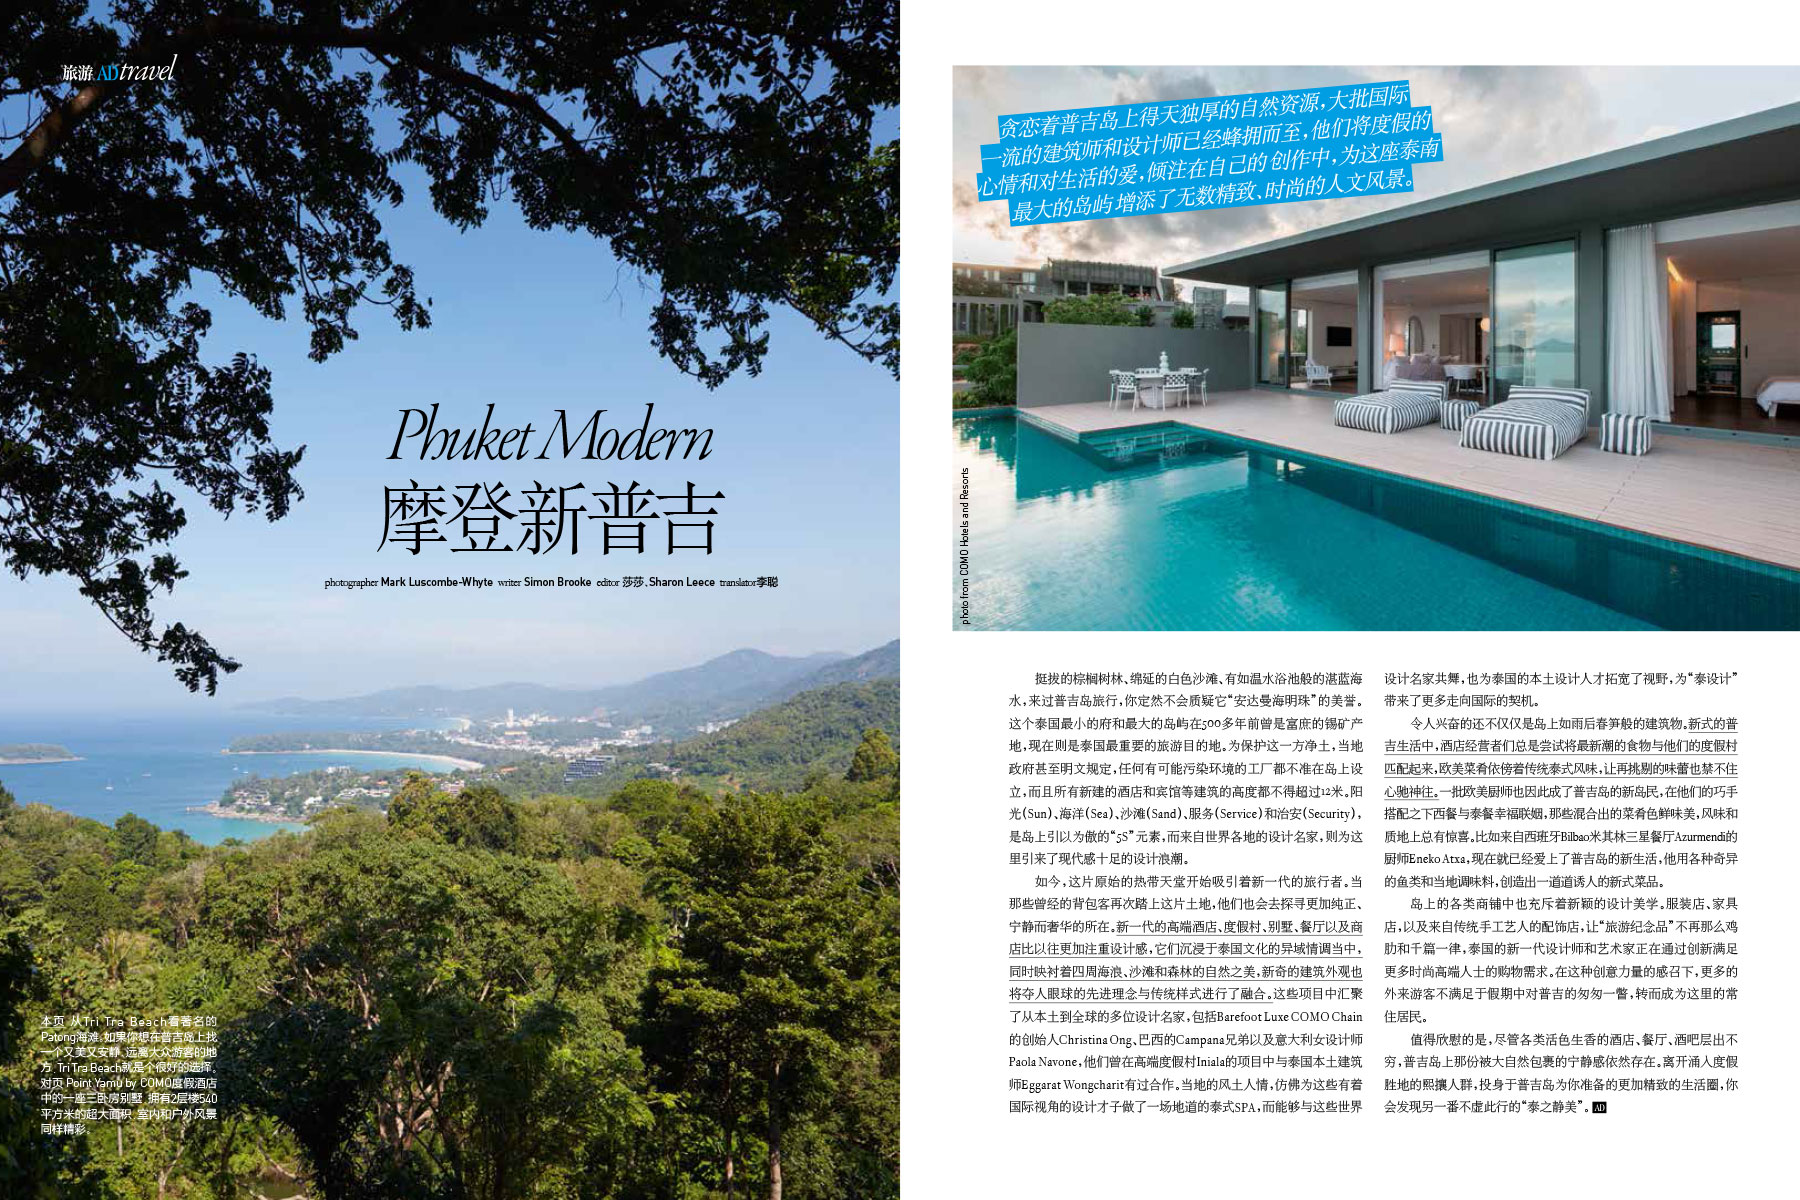 Phuket Travel, Architectural Digest, China.